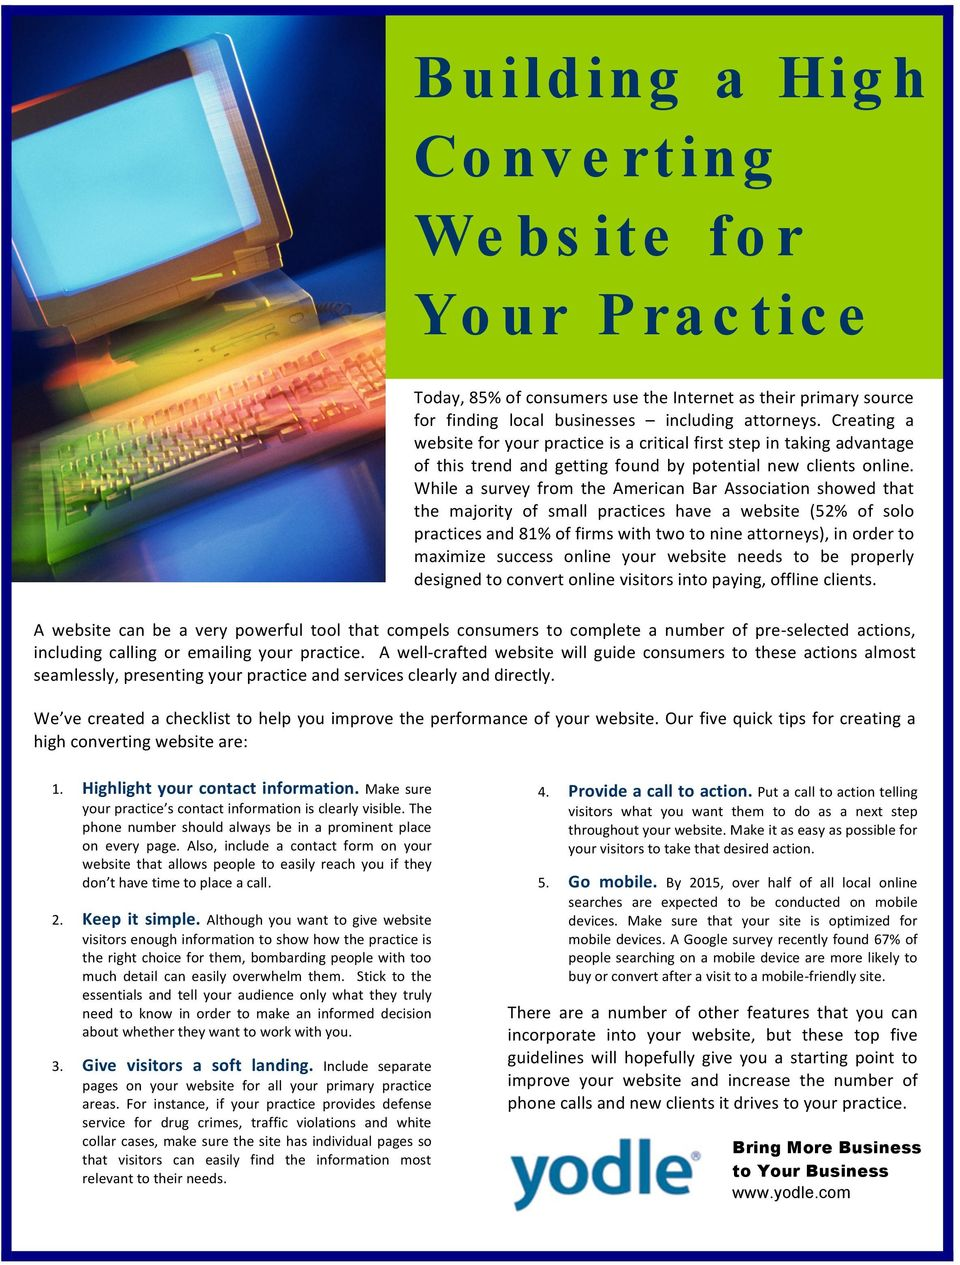 While a survey from the American Bar Association showed that the majority of small practices have a website (52% of solo practices and 81% of firms with two to nine attorneys), in order to maximize